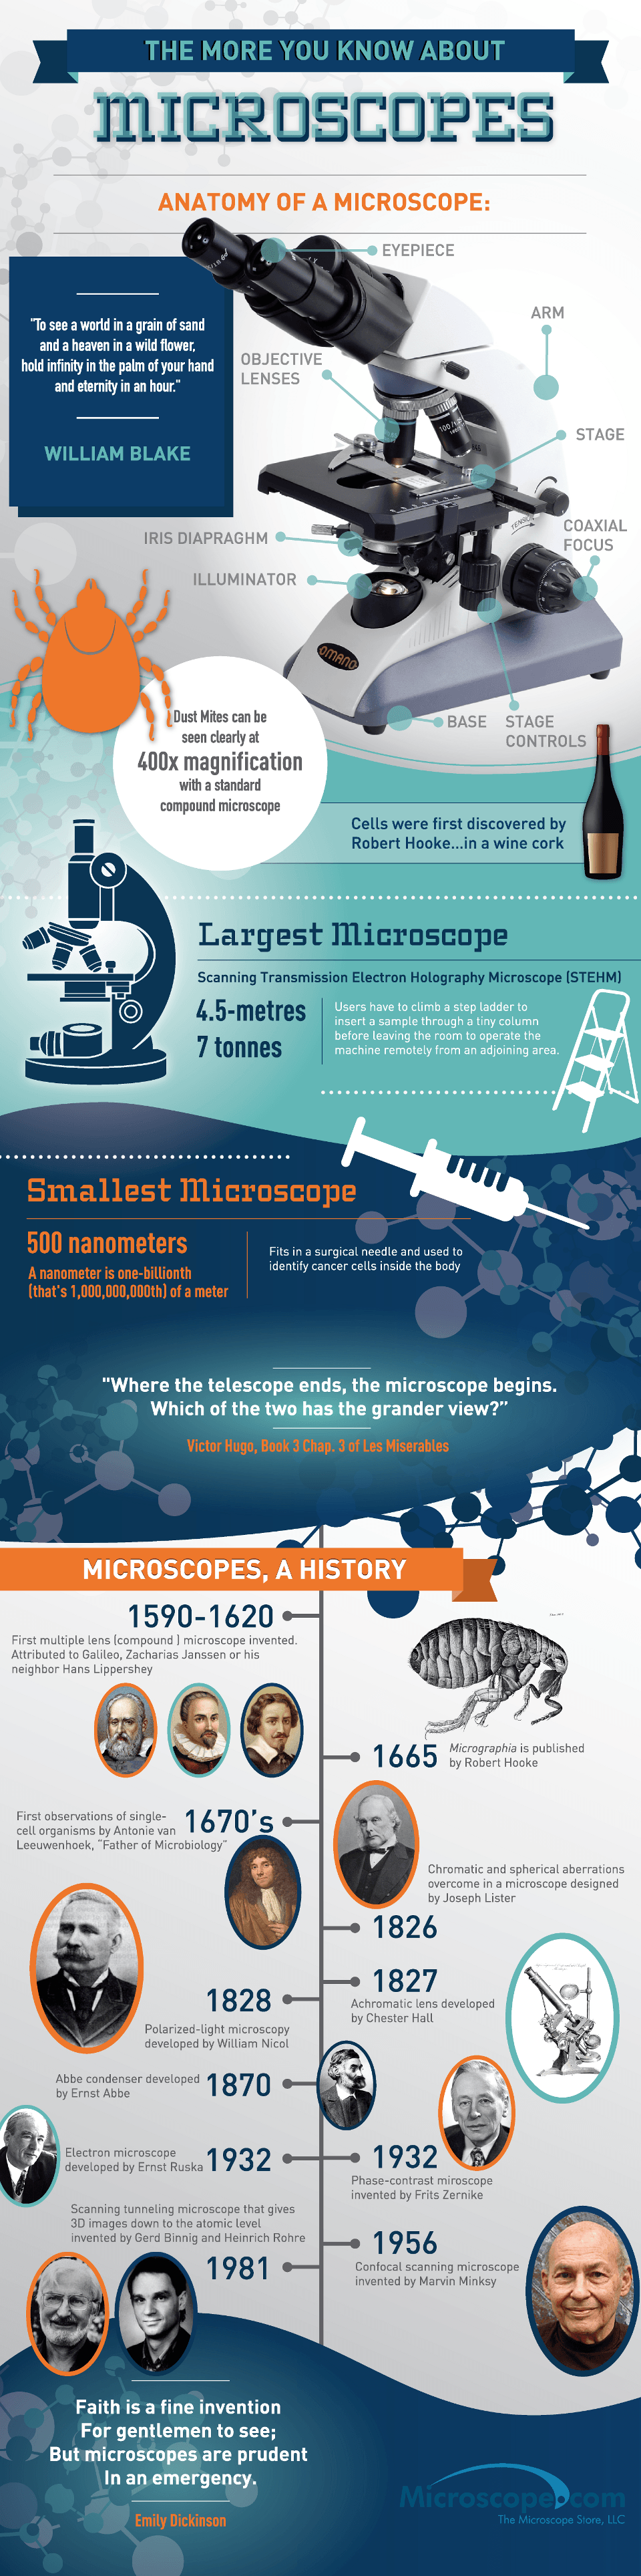 The More You Know About Microscopes Infographic